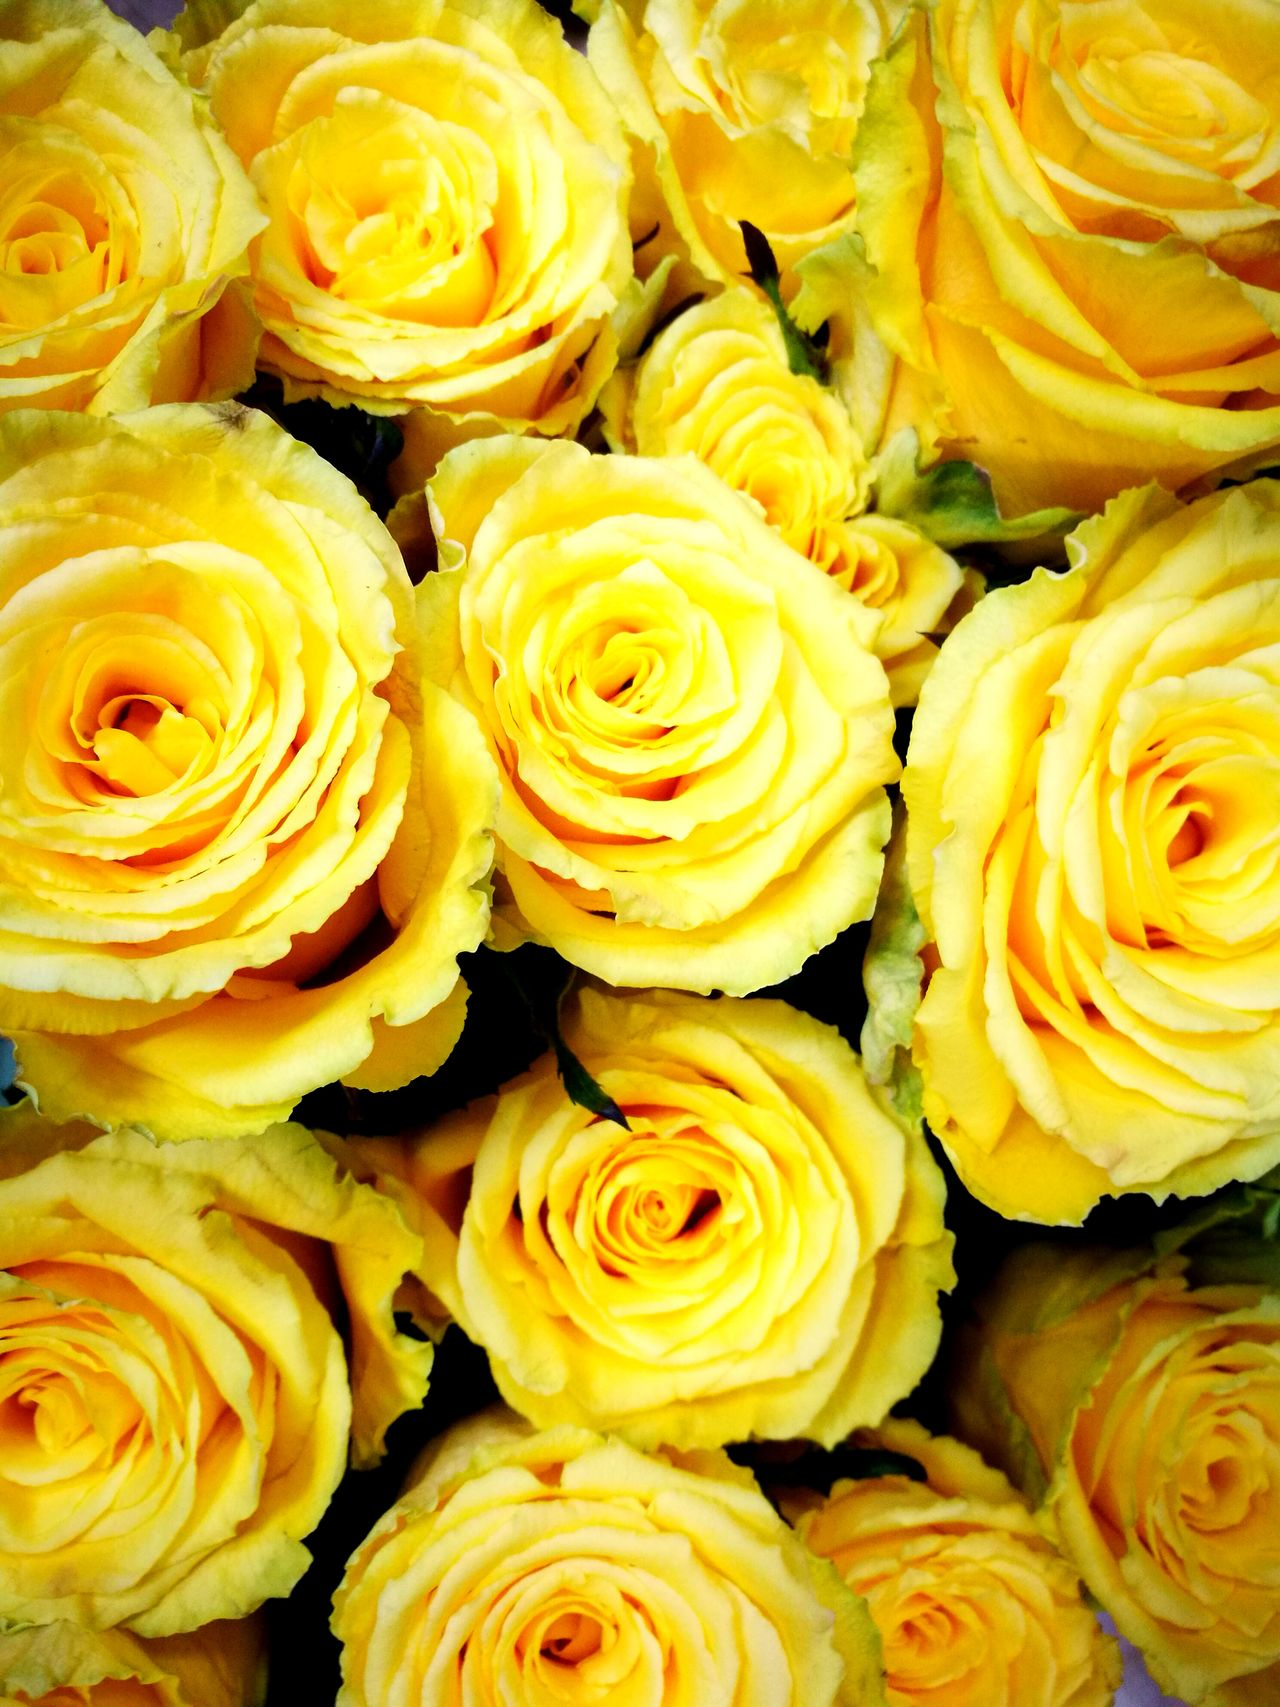 Let's talk about yellow roses 😉 Nature Close-up Full Frame Yellow Backgrounds No People Indoors  Beauty In Nature Freshness Fragility Day Rose🌹 Rose - Flower Roses🌹 Yellow Flower Yellow Flowers Yellow Rose Yellow Roses